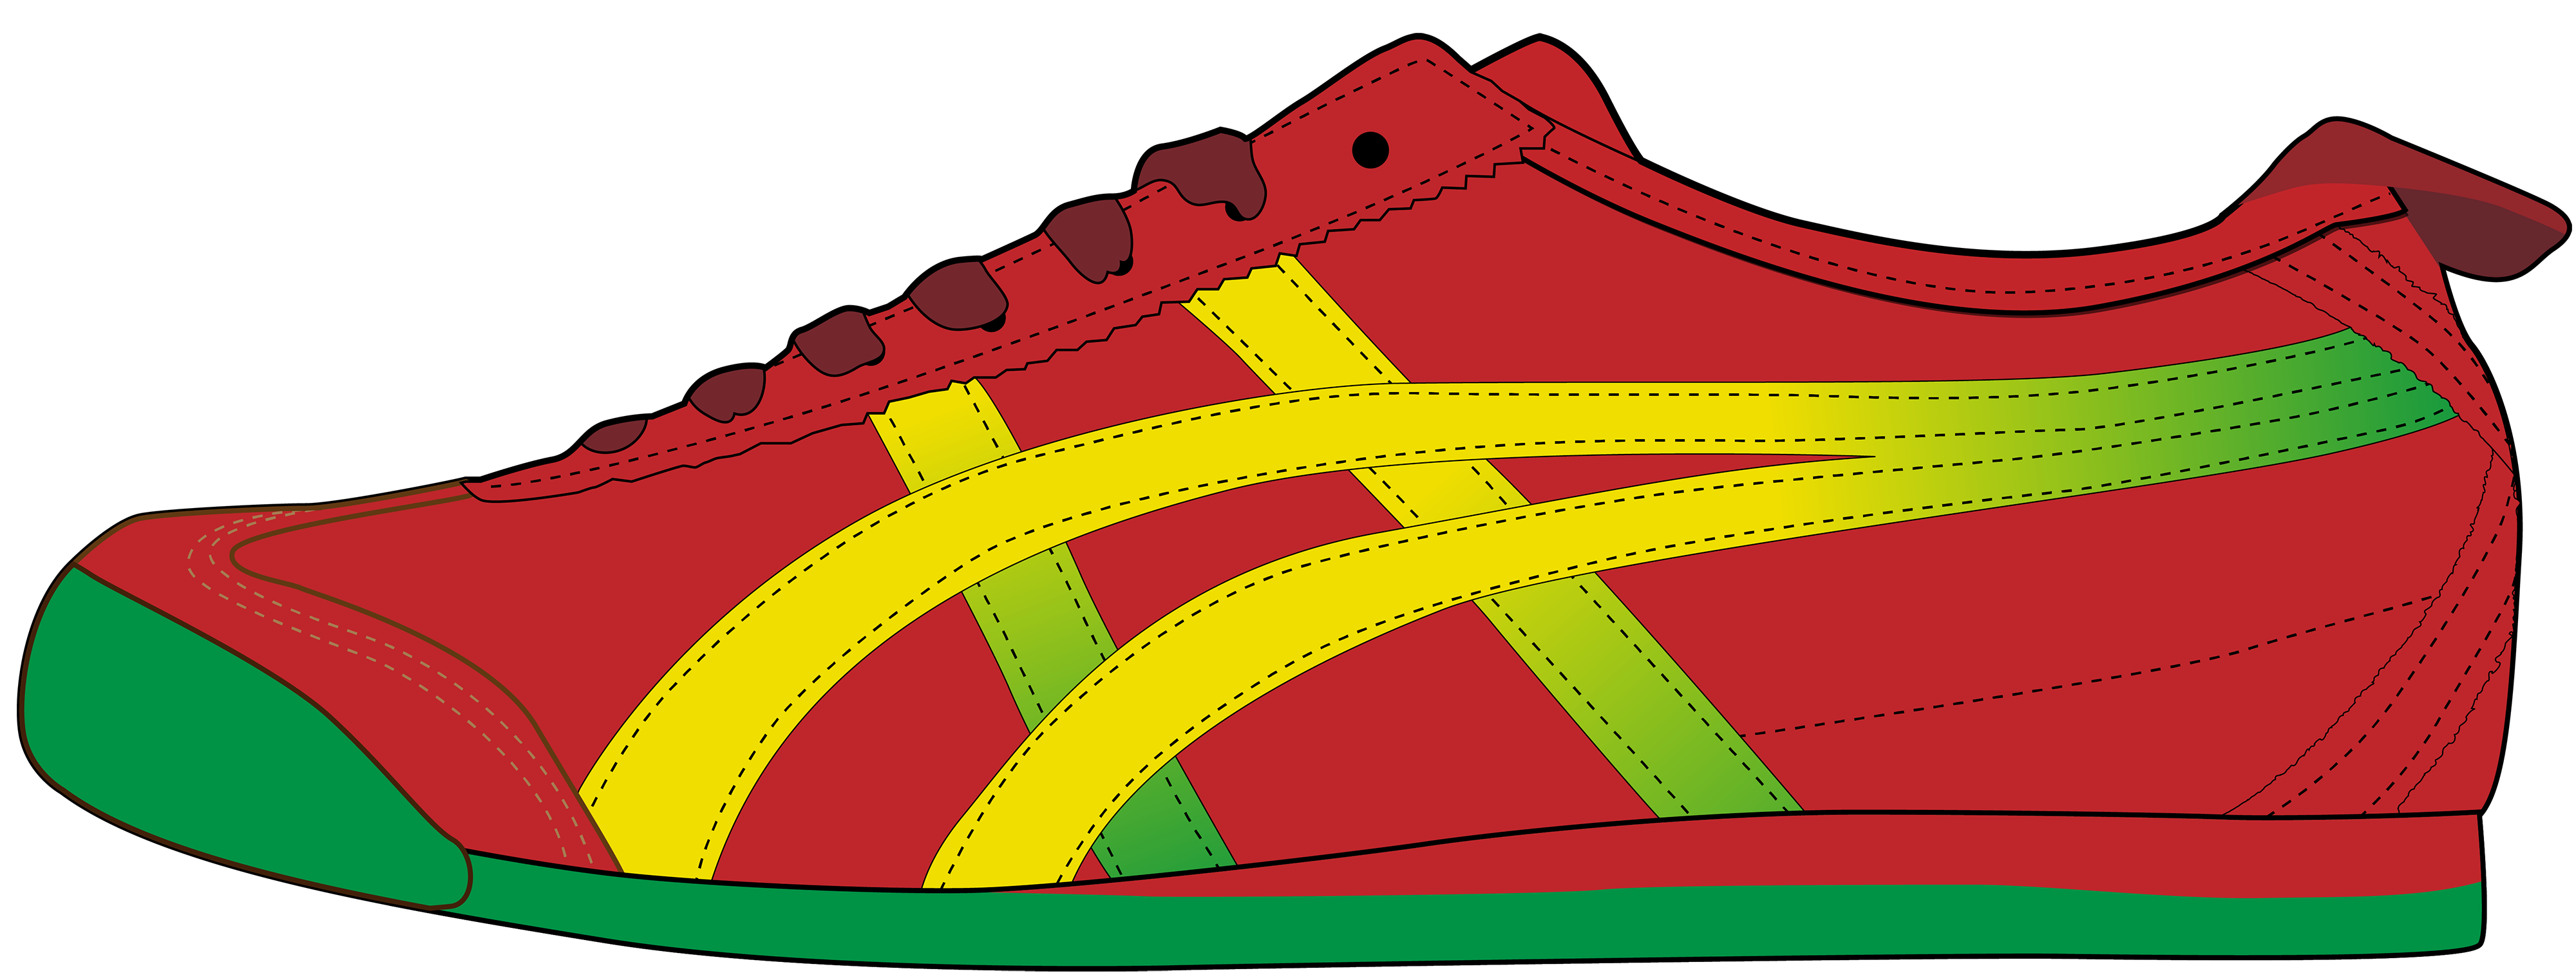 4000x1522 Shoe Clipart, Suggestions For Shoe Clipart, Download Shoe Clipart